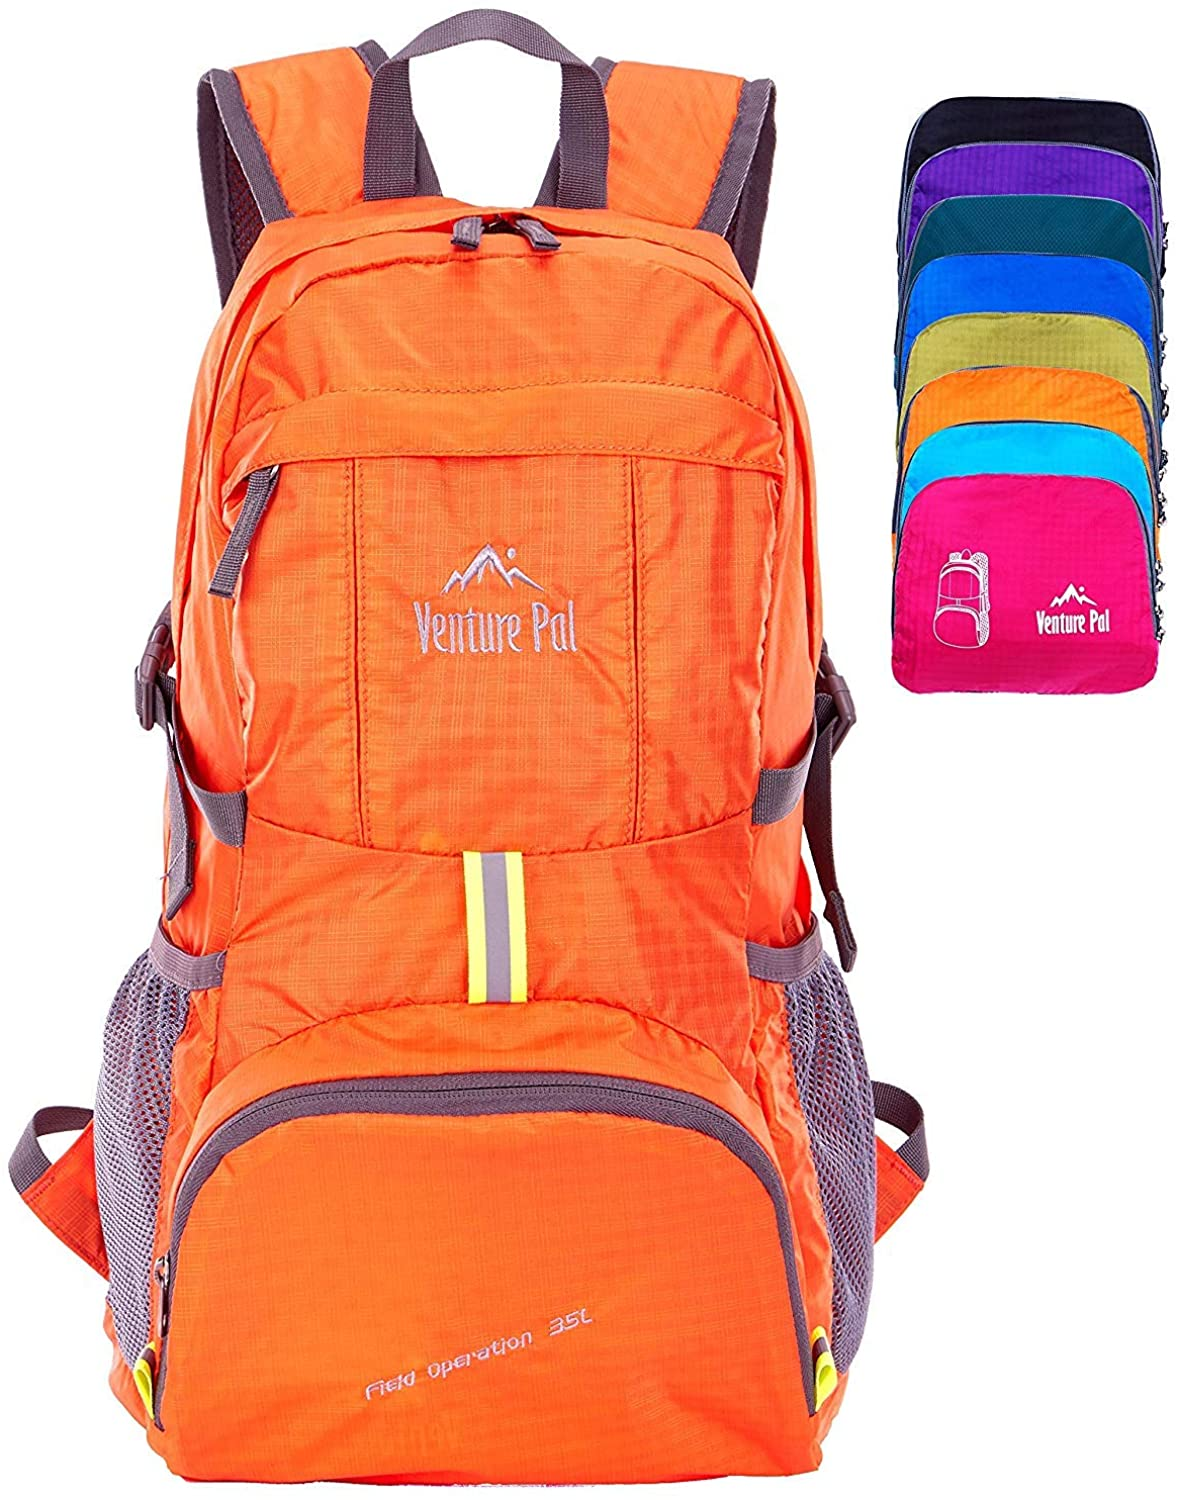 Venture Pal Lightweight Packable Daypack